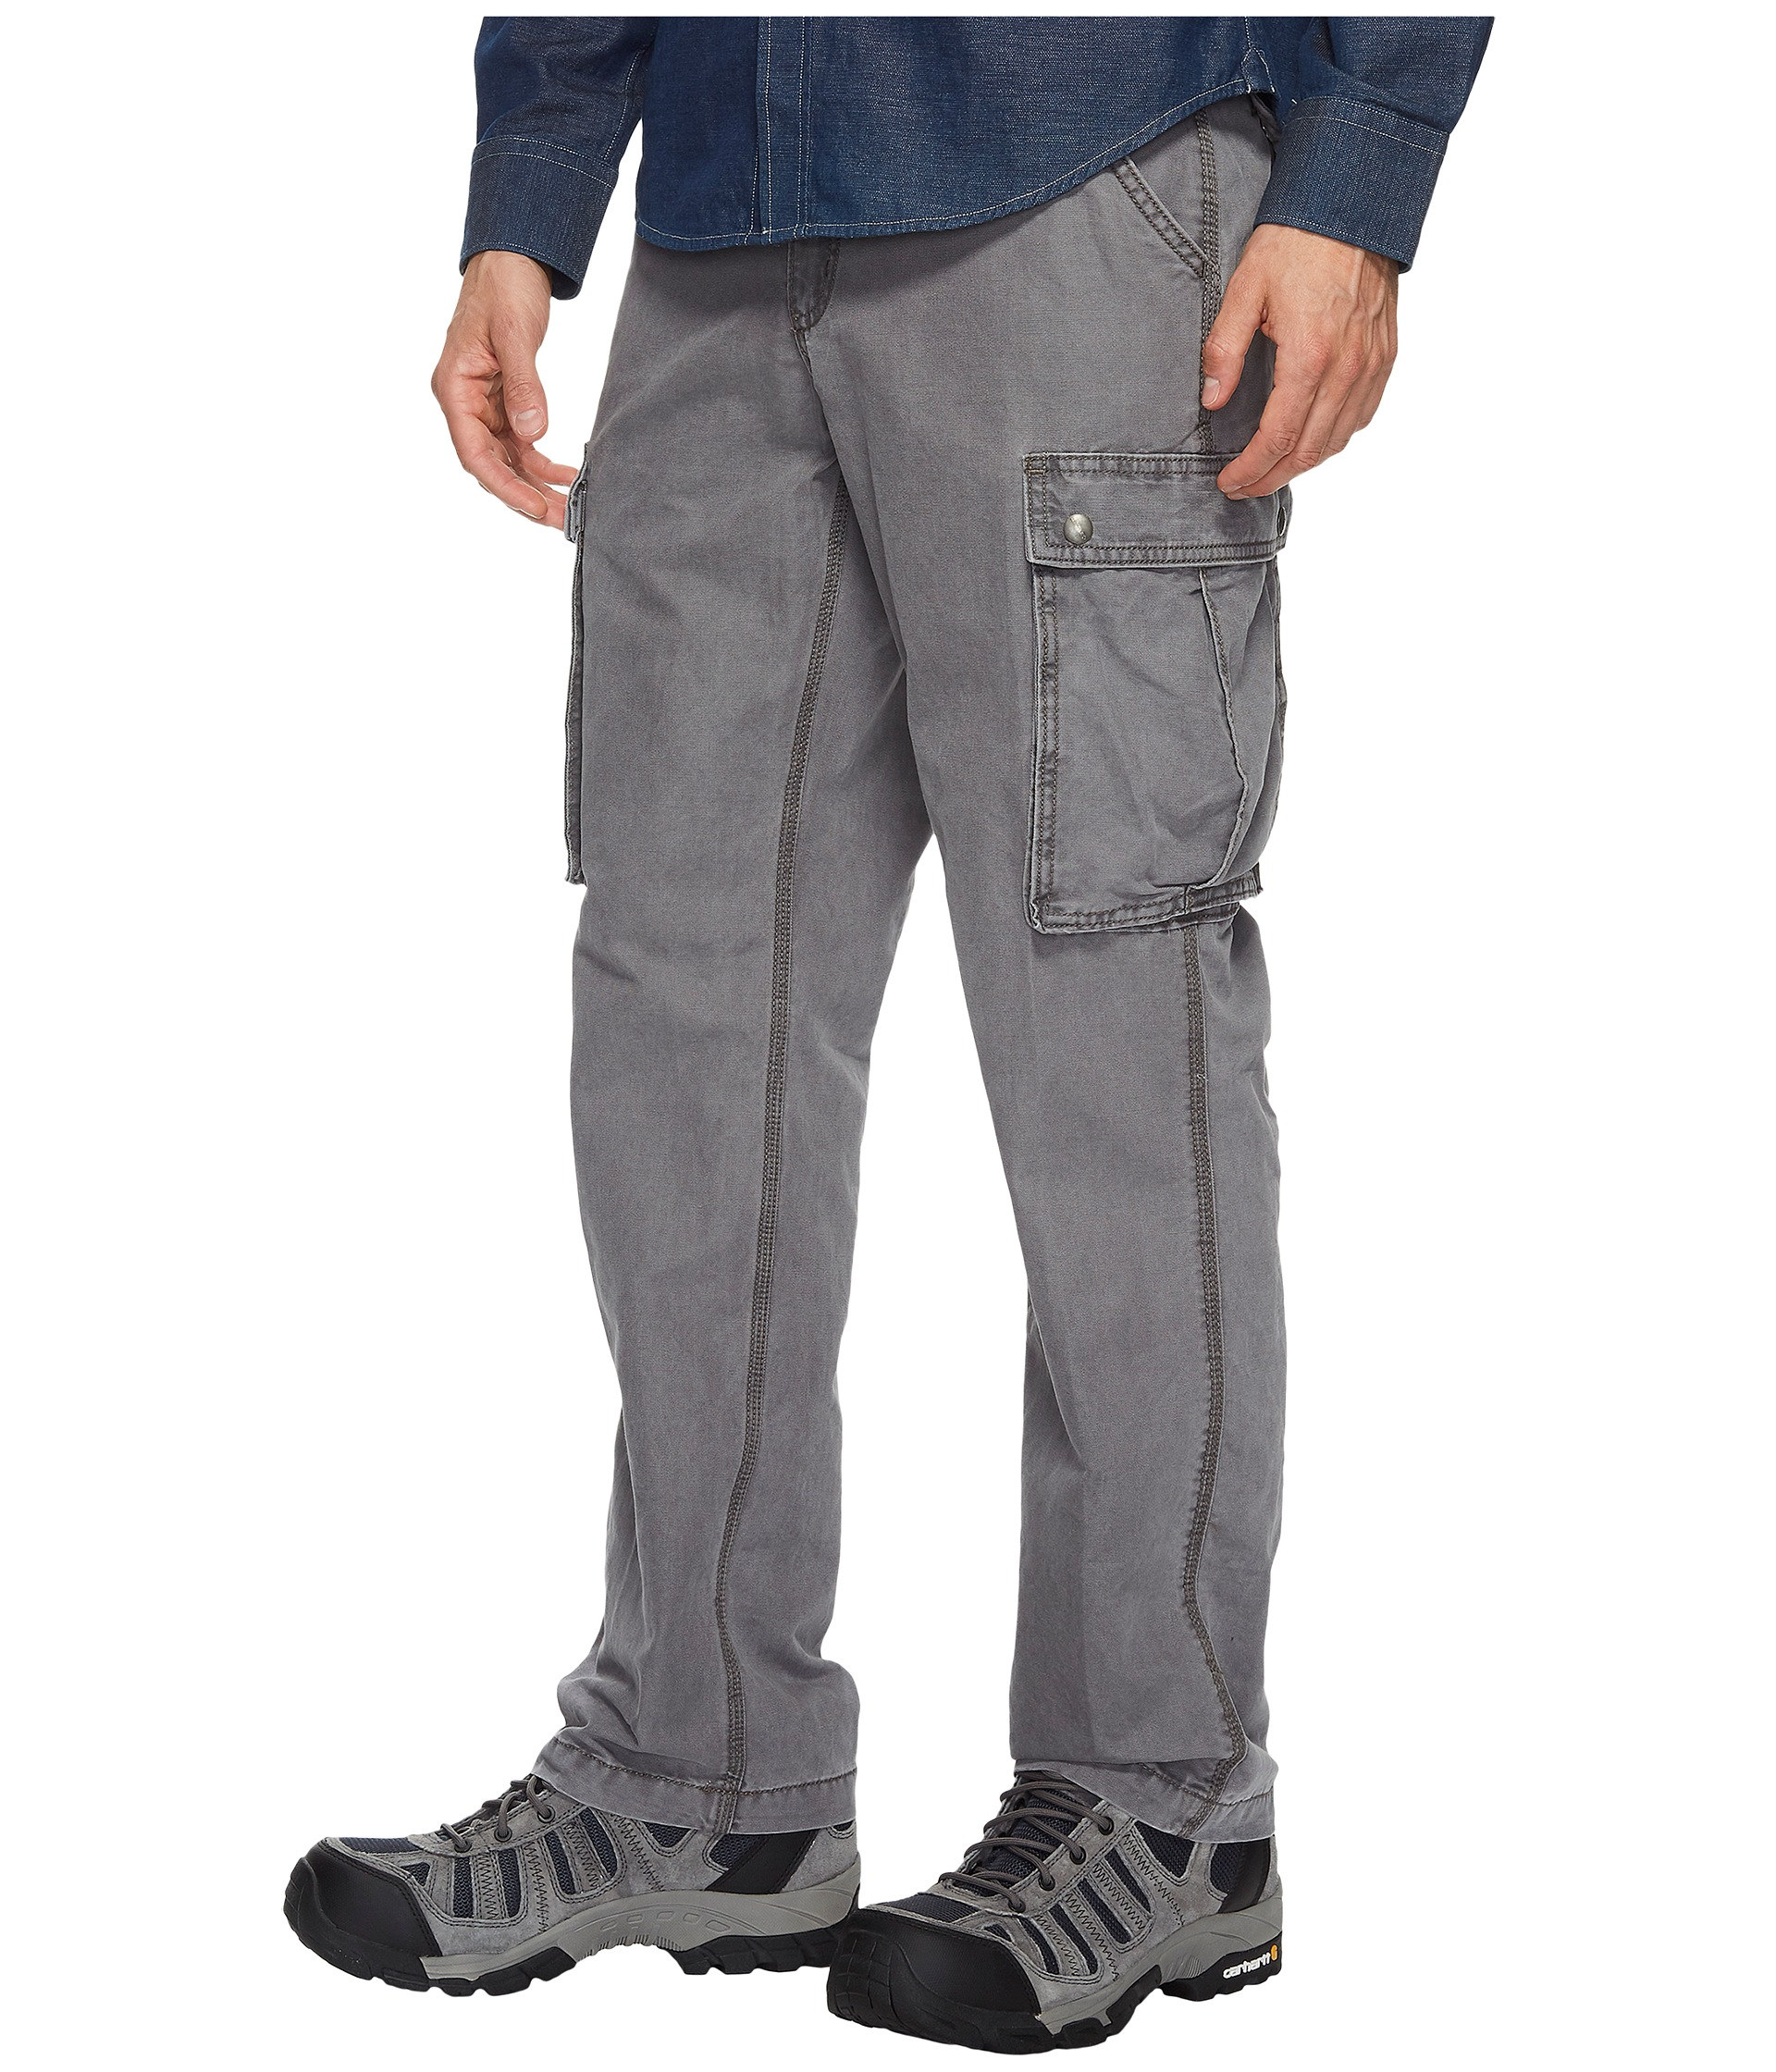 Amazing Carhartt Ripstop Cargo Work Pant  Zapposcom Free Shipping BOTH Ways